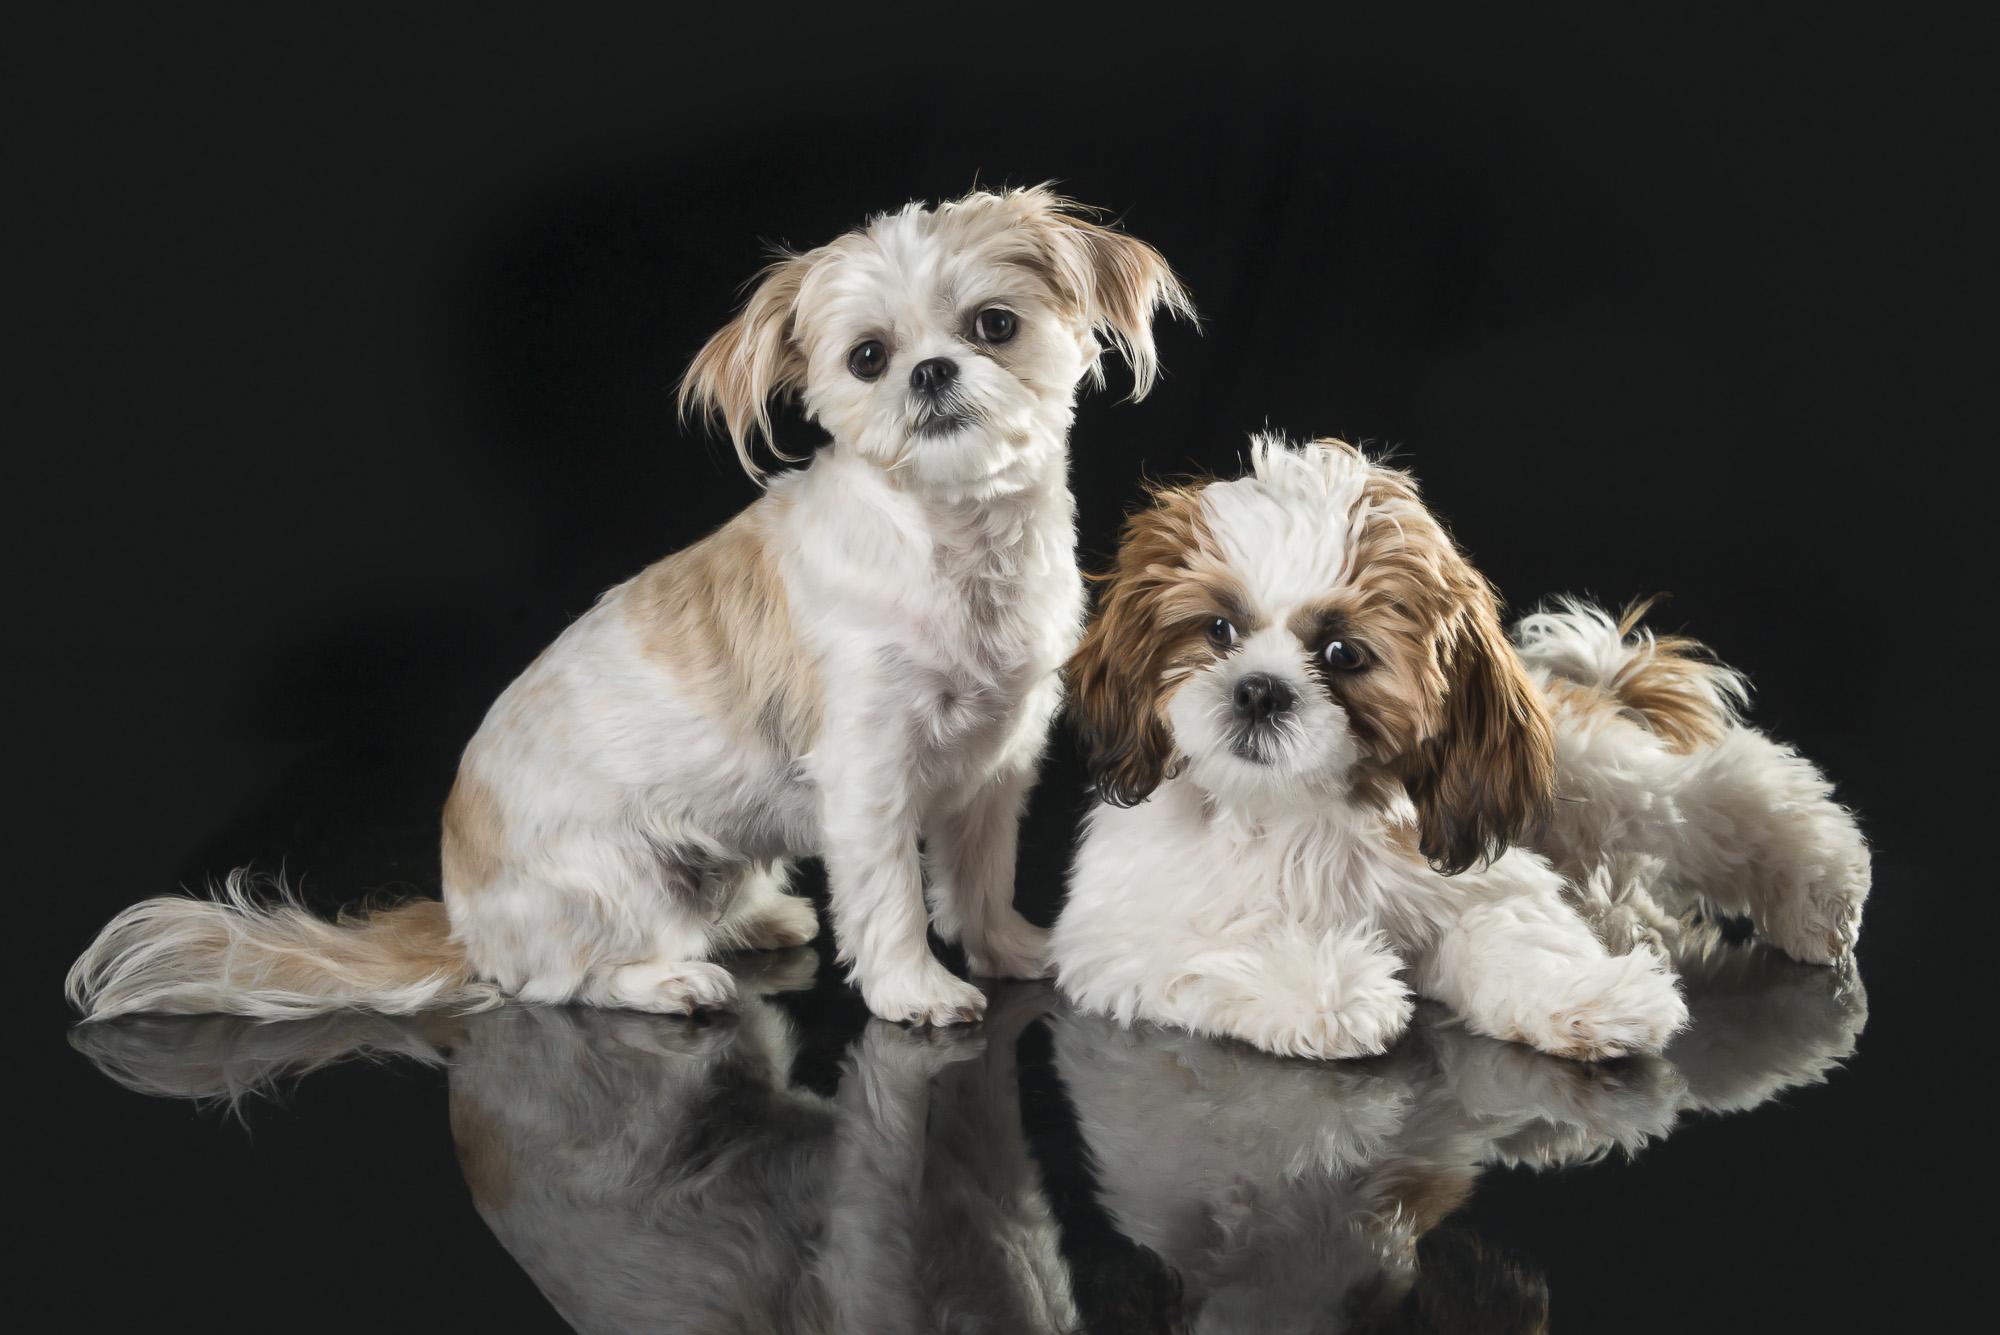 LupinBay-Dog-Pet-Photography-Shih-Tzu-Griffin-Toy-Poodle-0160-5495.jpg